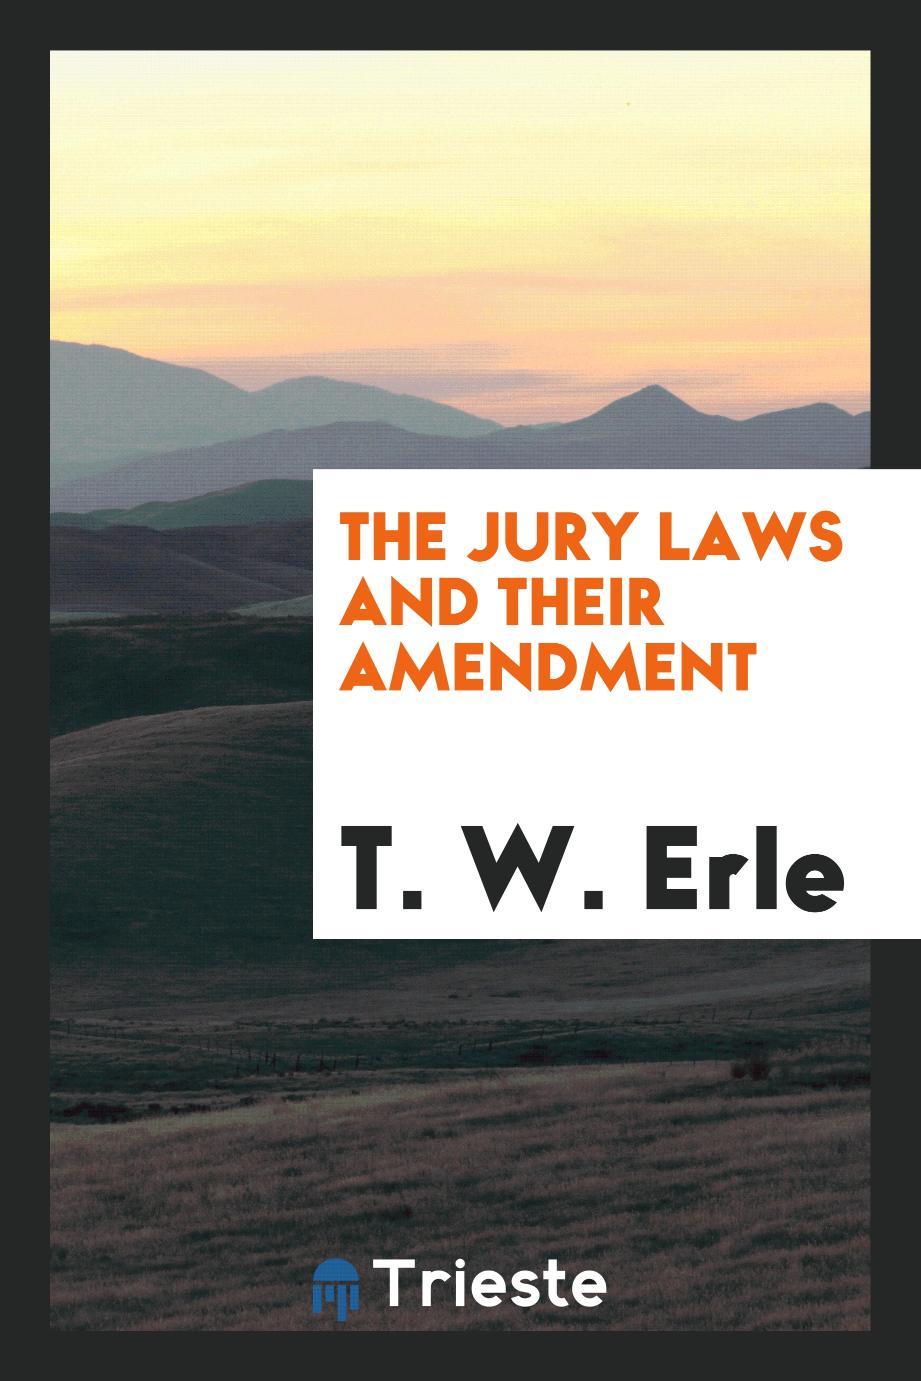 The Jury Laws and Their Amendment